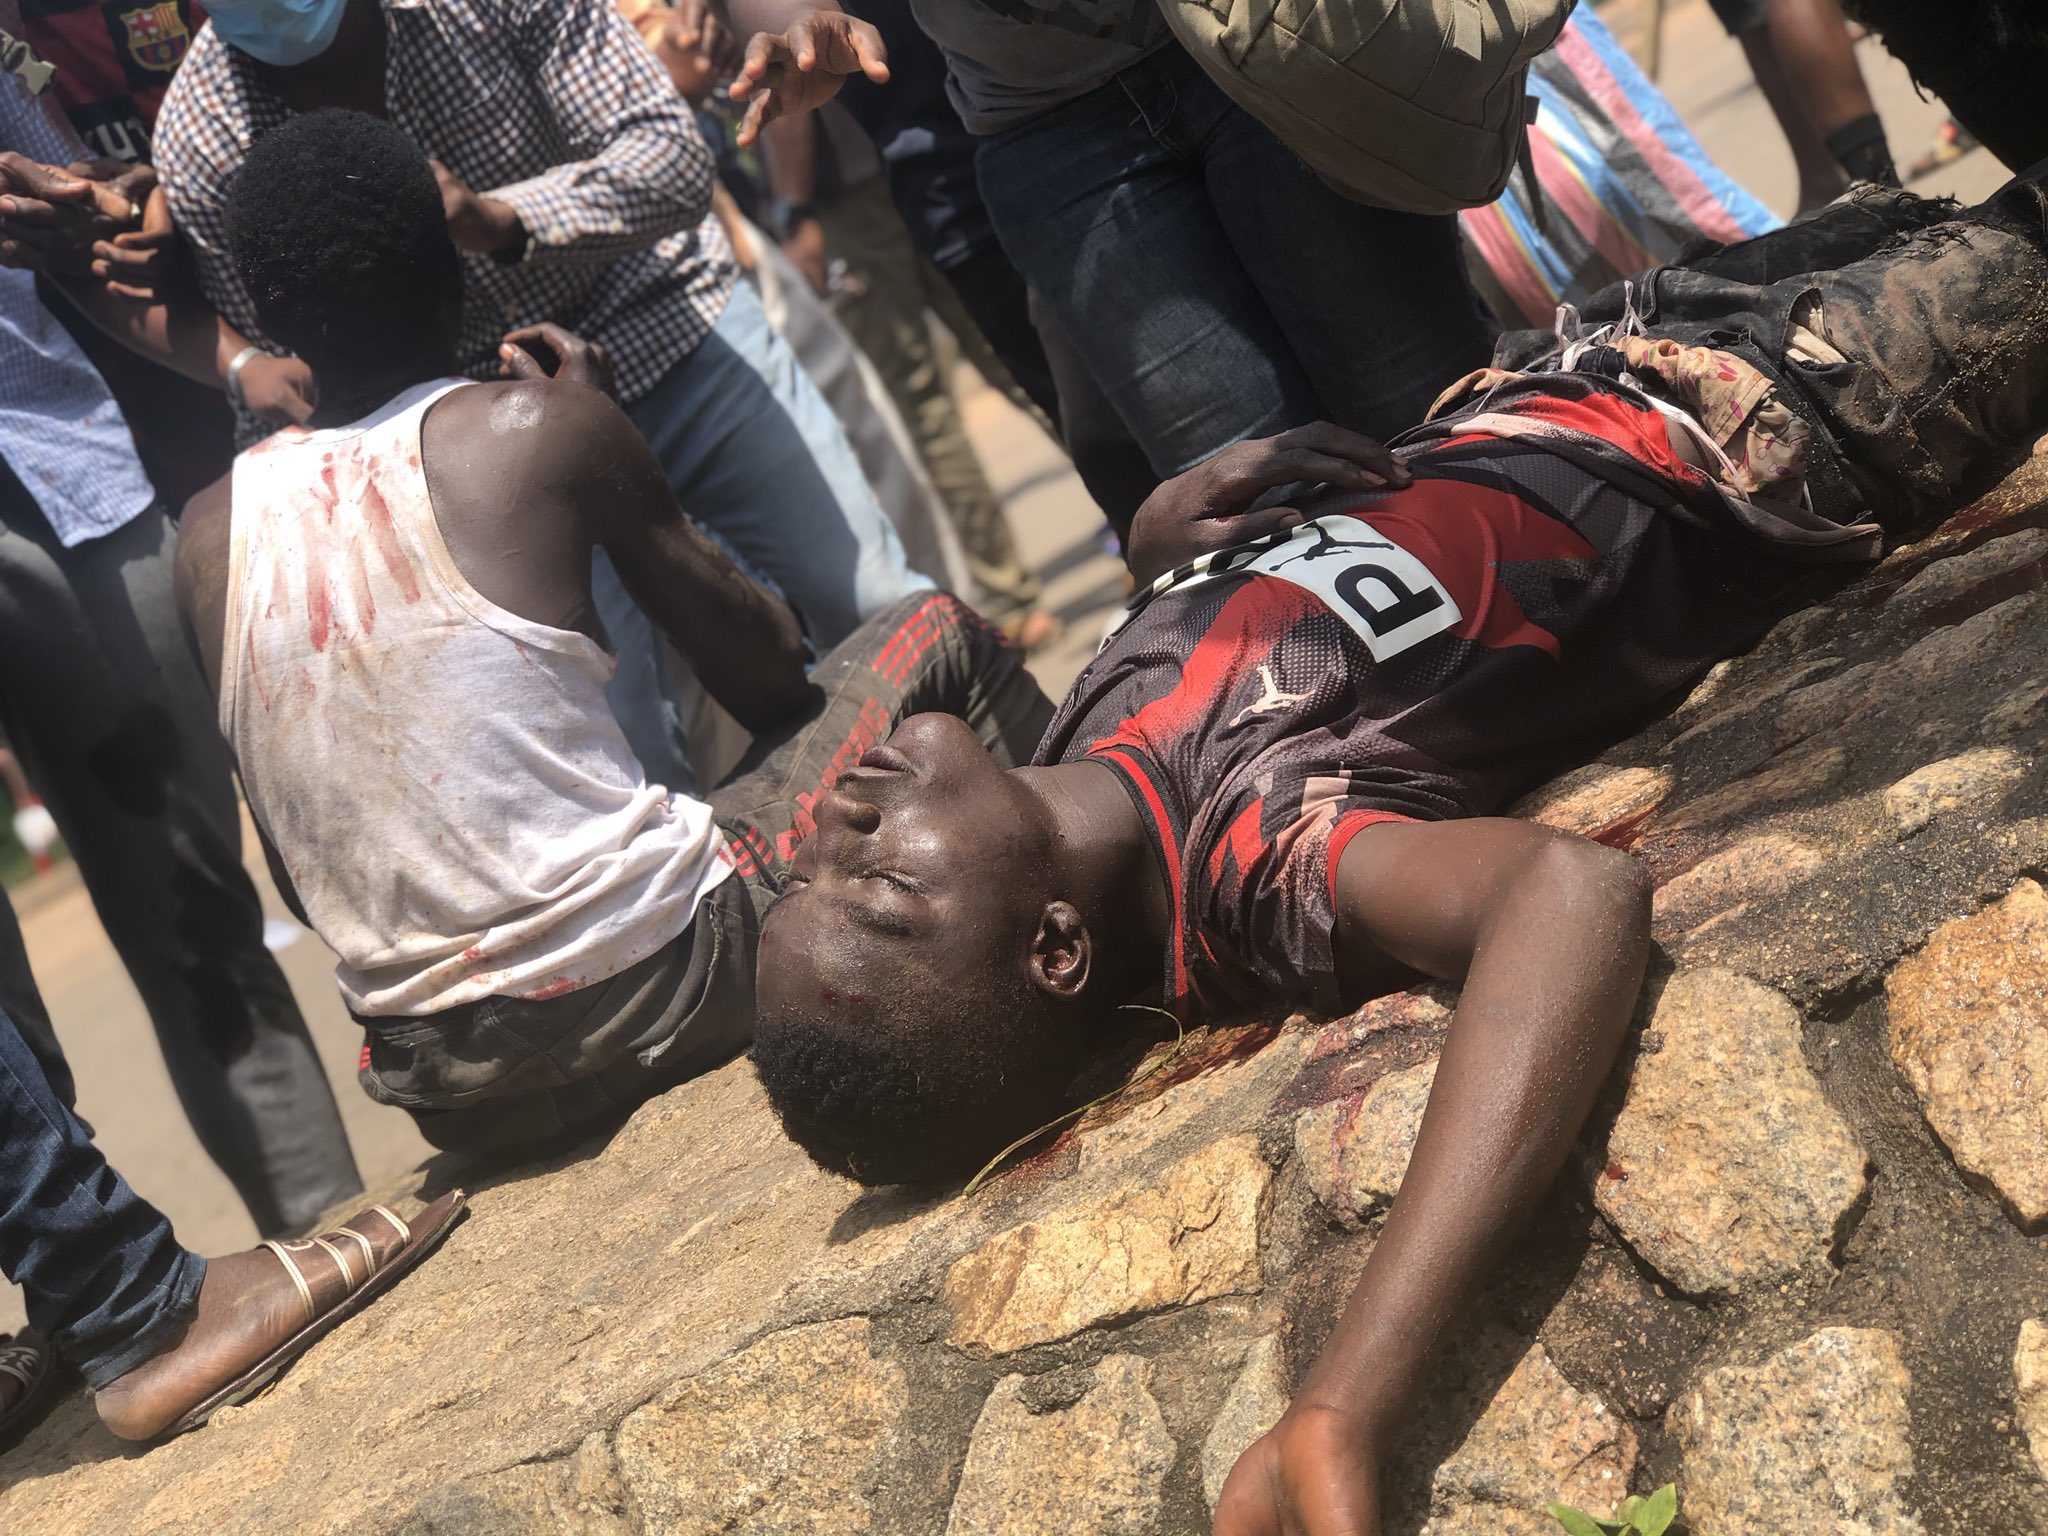 Photos of wounded Nigerians, vandalised cars in #EndSars, #ProSARS clash in Abuja